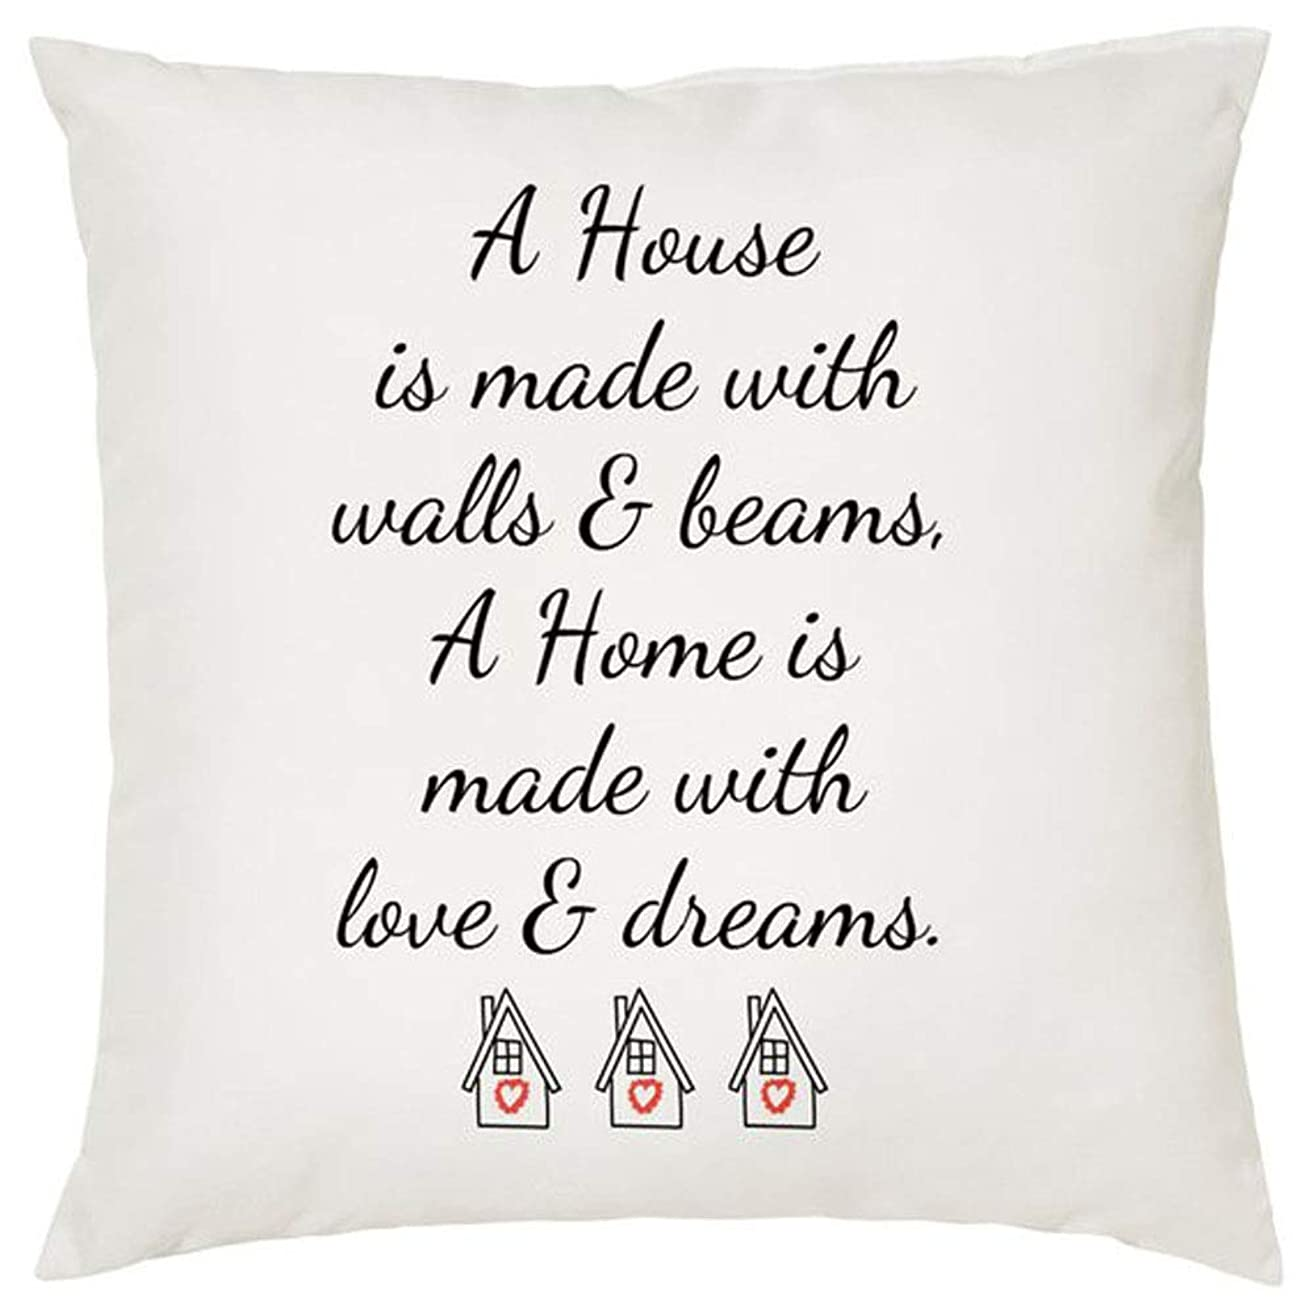 High quality Decorative Cushion, A House is Made With Walls and beams, A Home Is Made With Love & Dreams